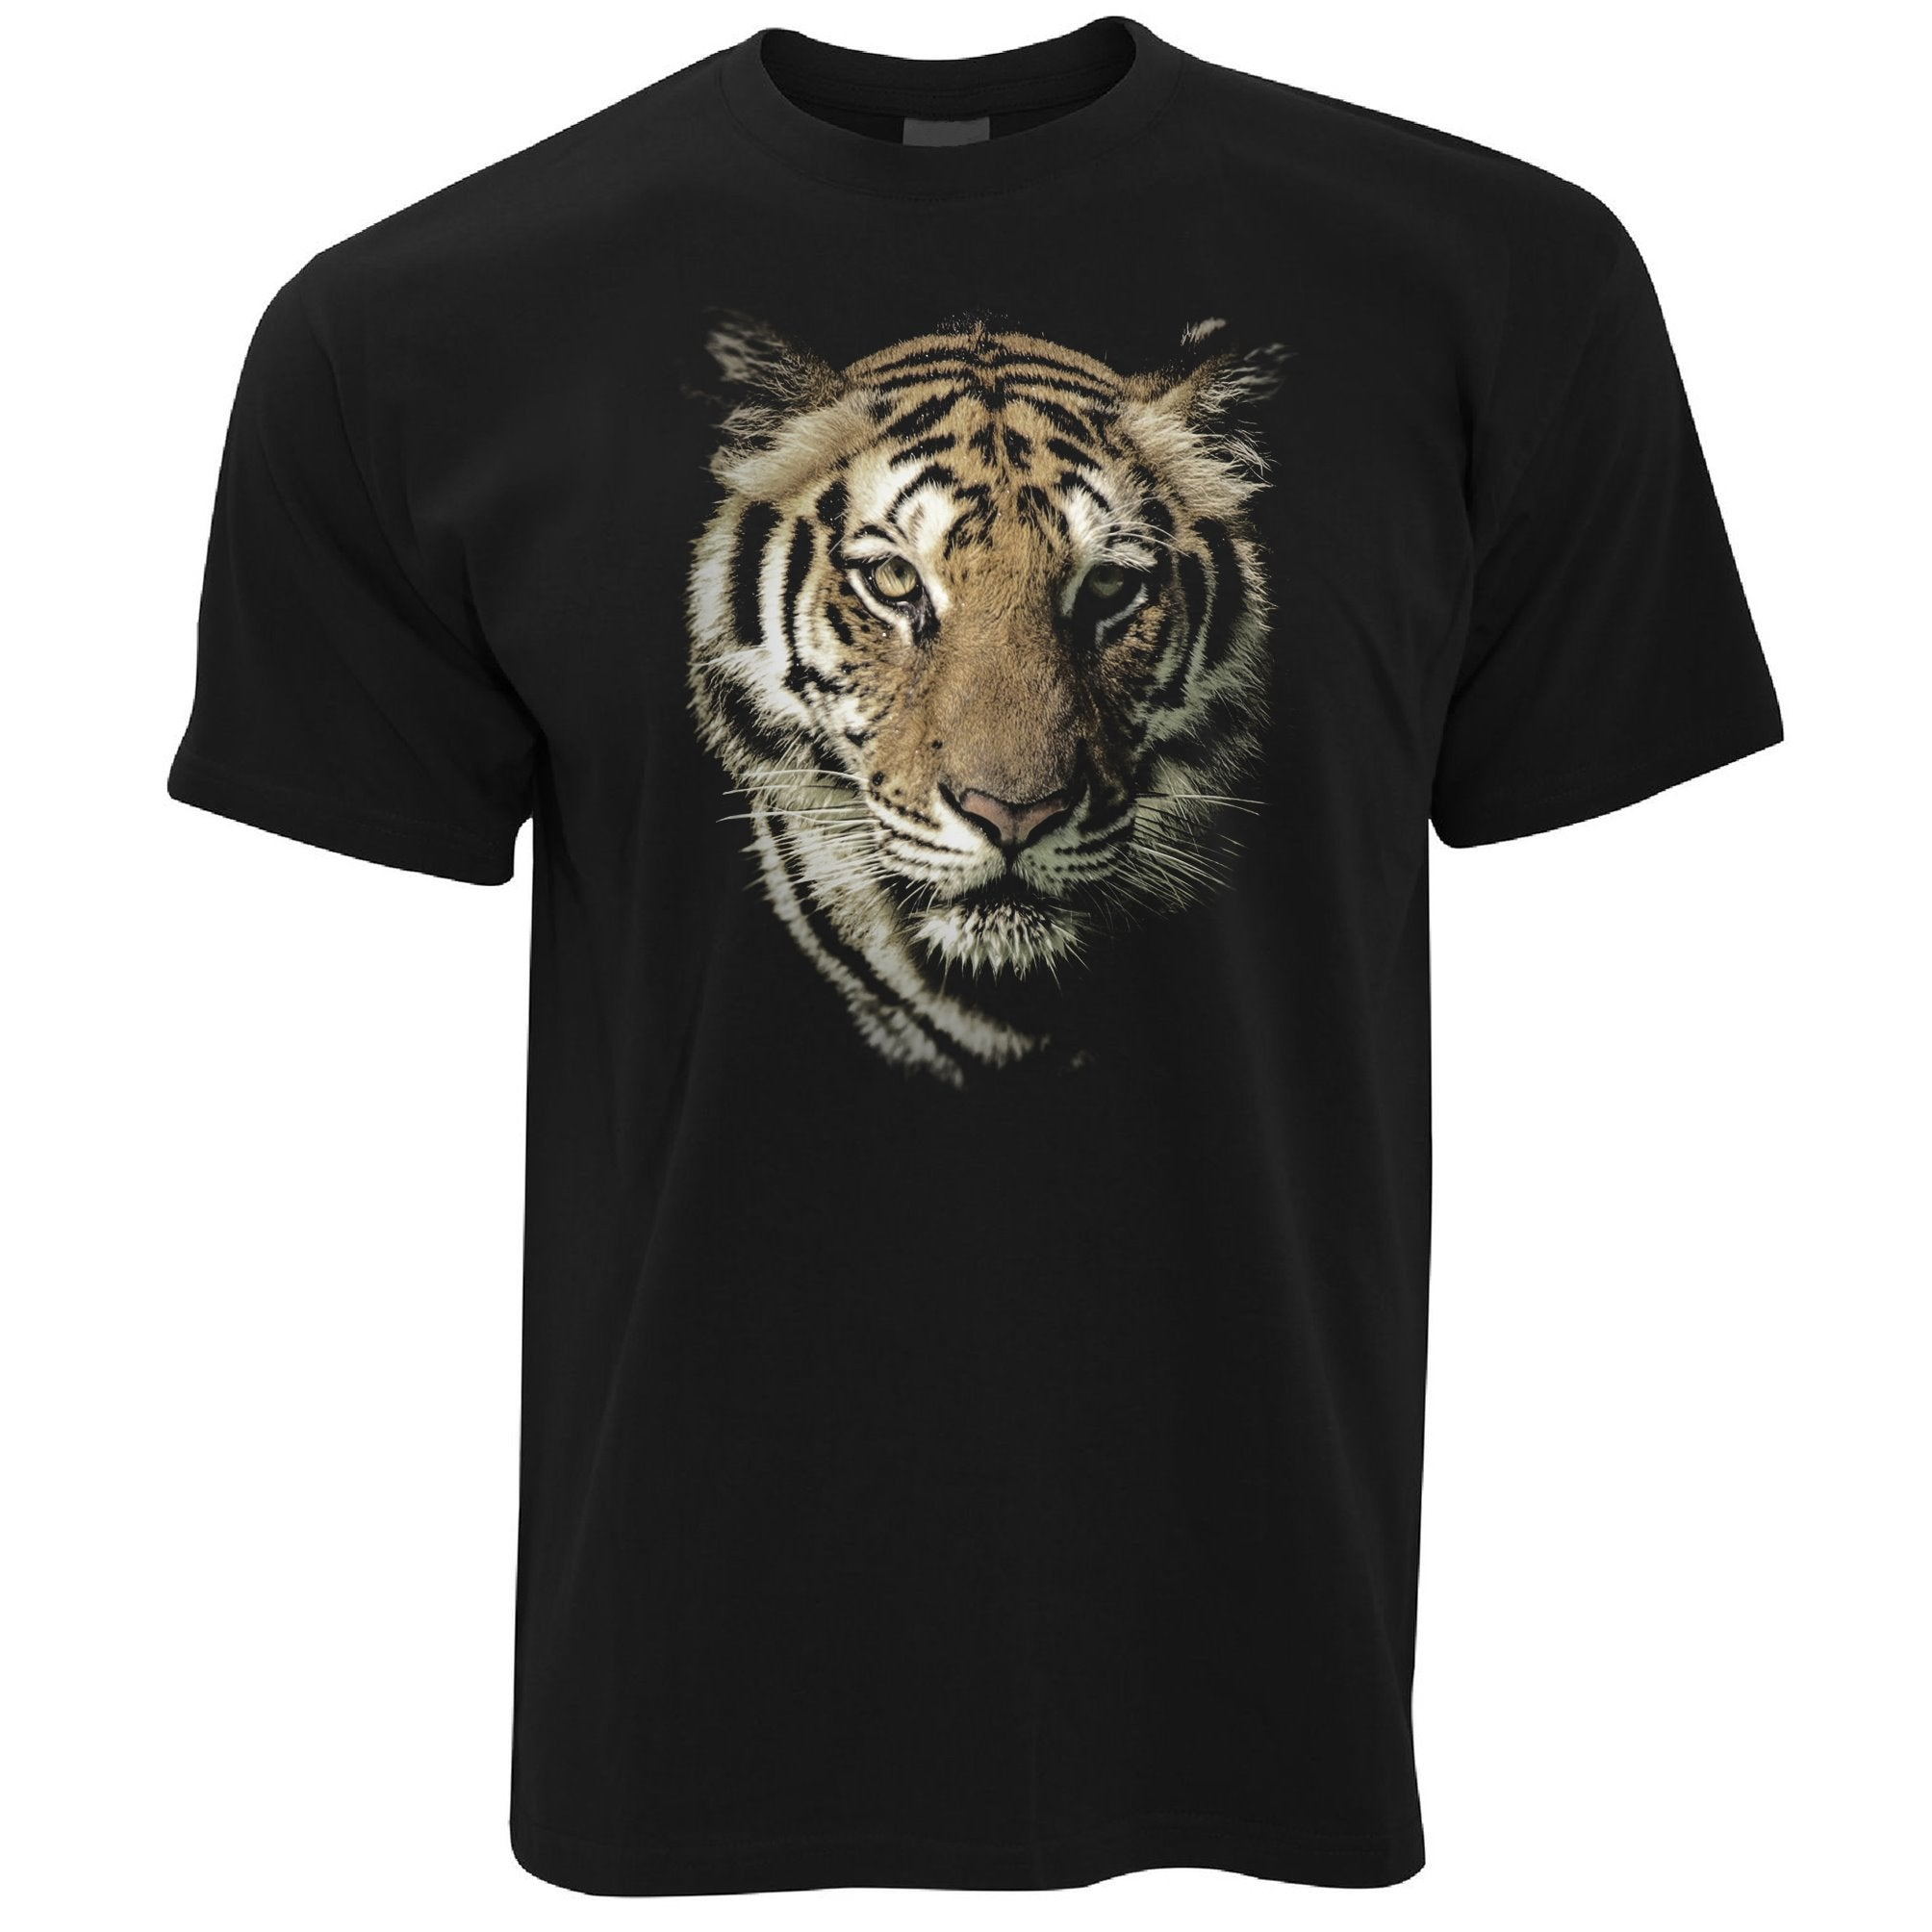 I Love Tiger King Of The Jungle T Shirt Wild Animal